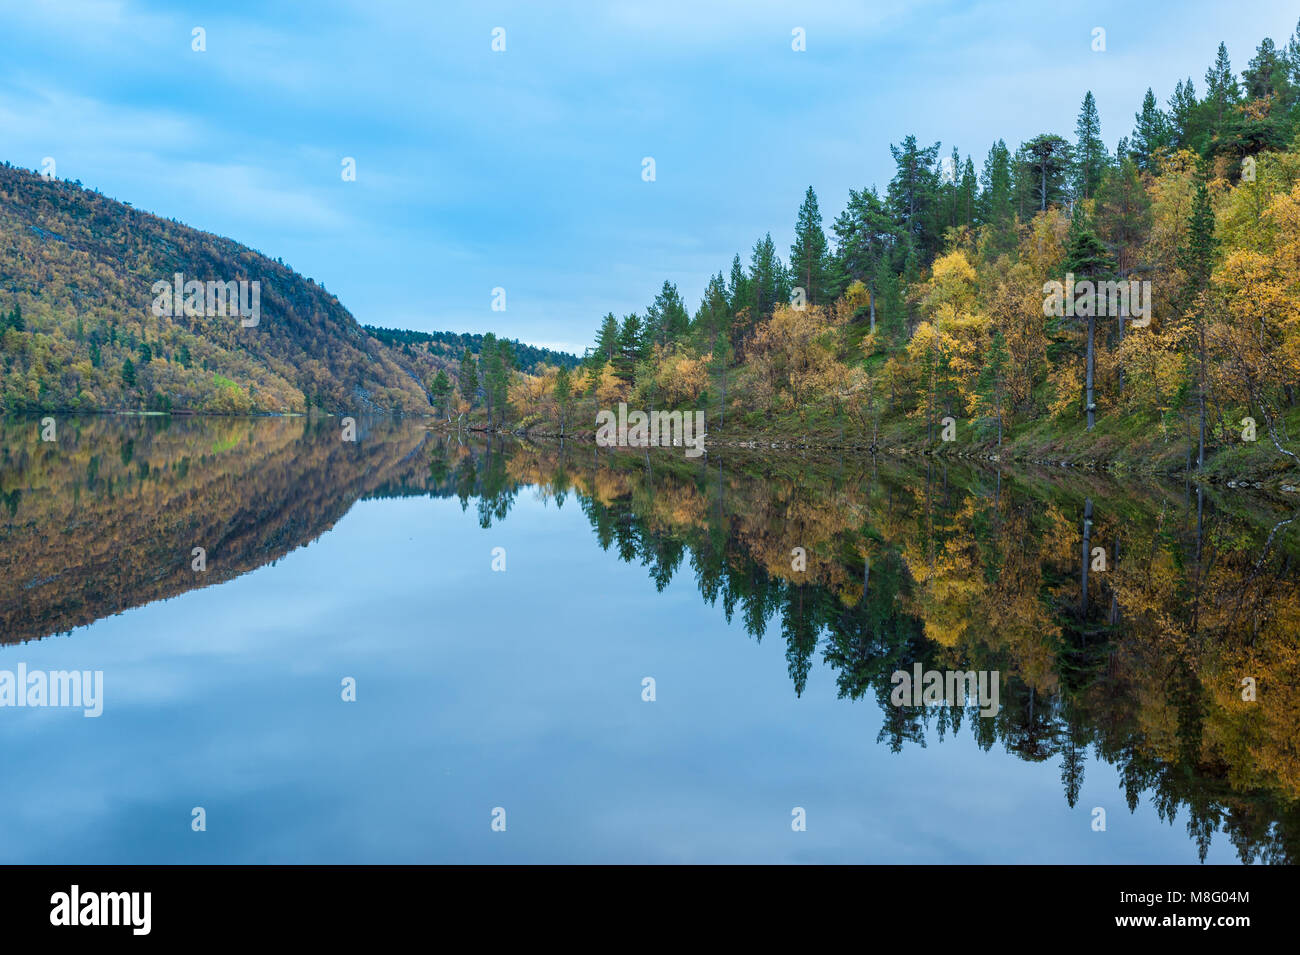 Calm placid freshwater lake with dense trees forest on the shore - Stock Image